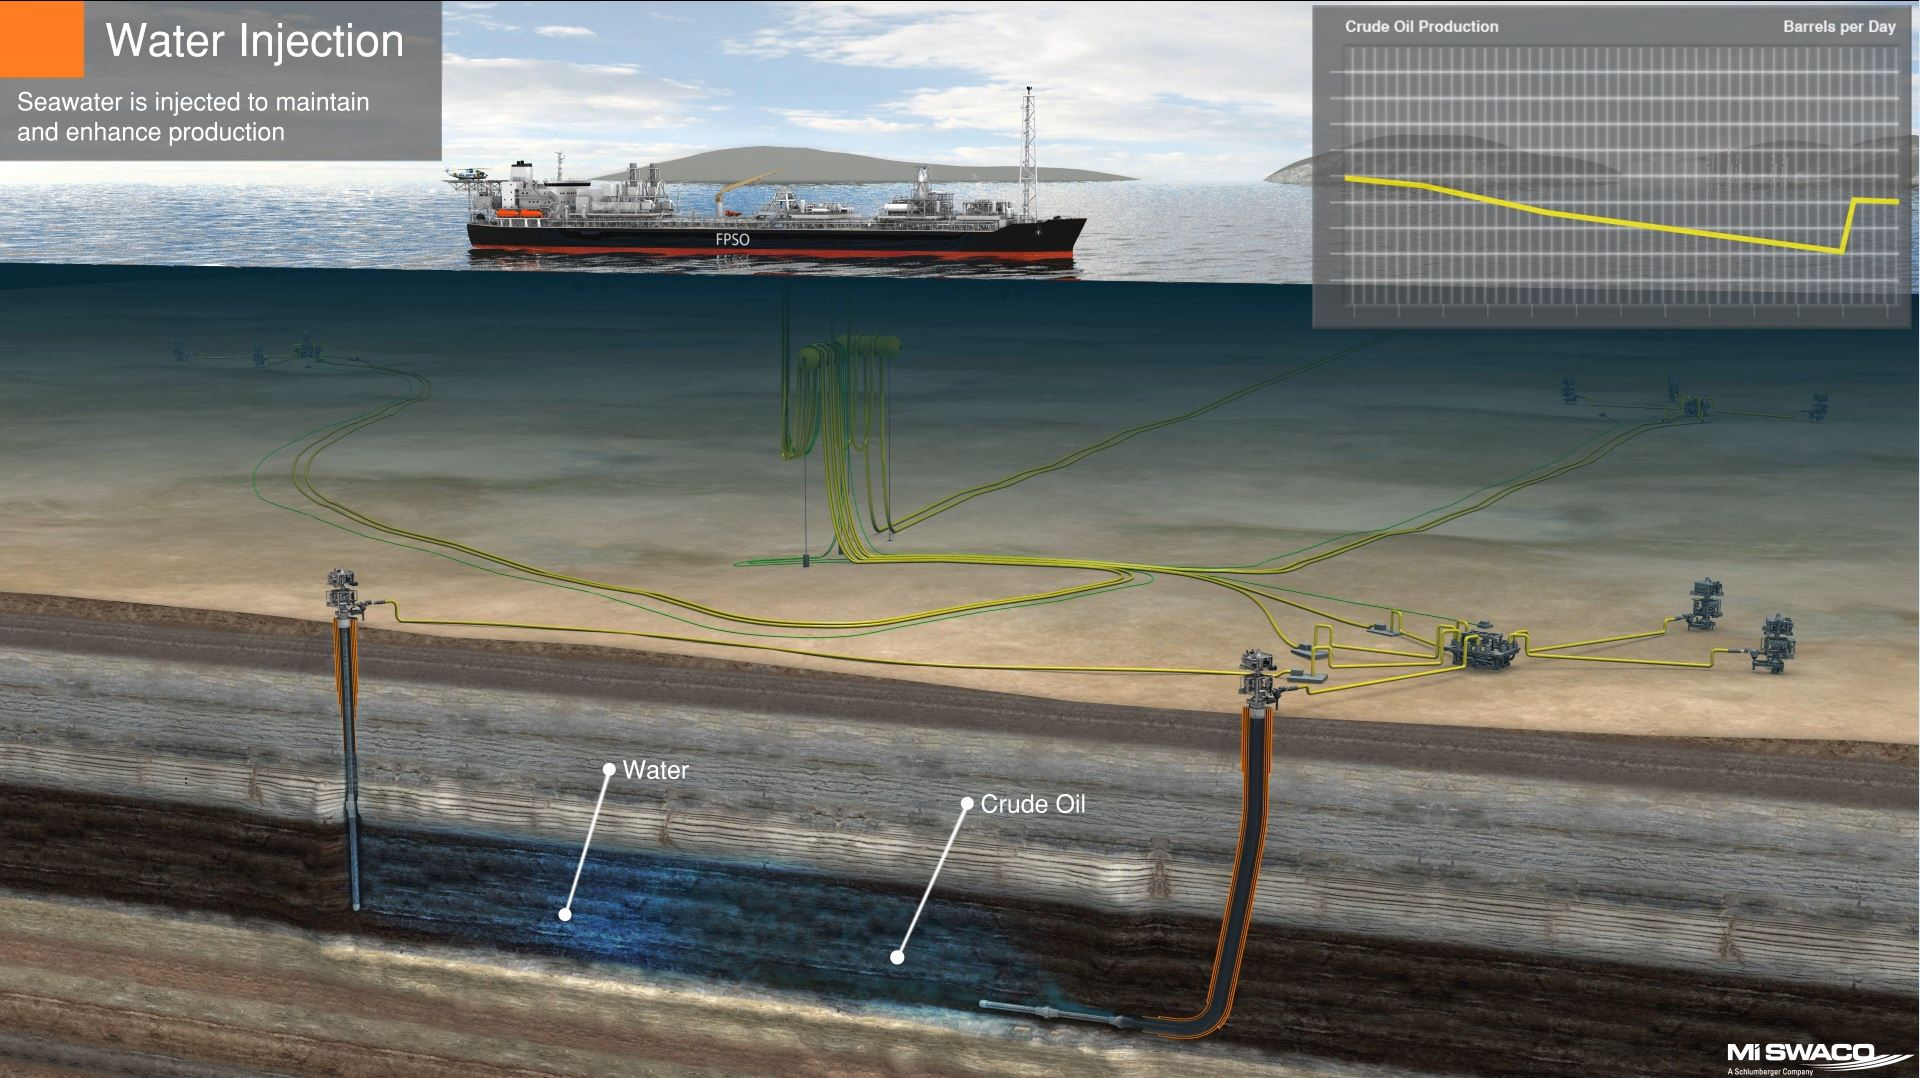 schlumberger-m-i-swaco-drilling-water-injection